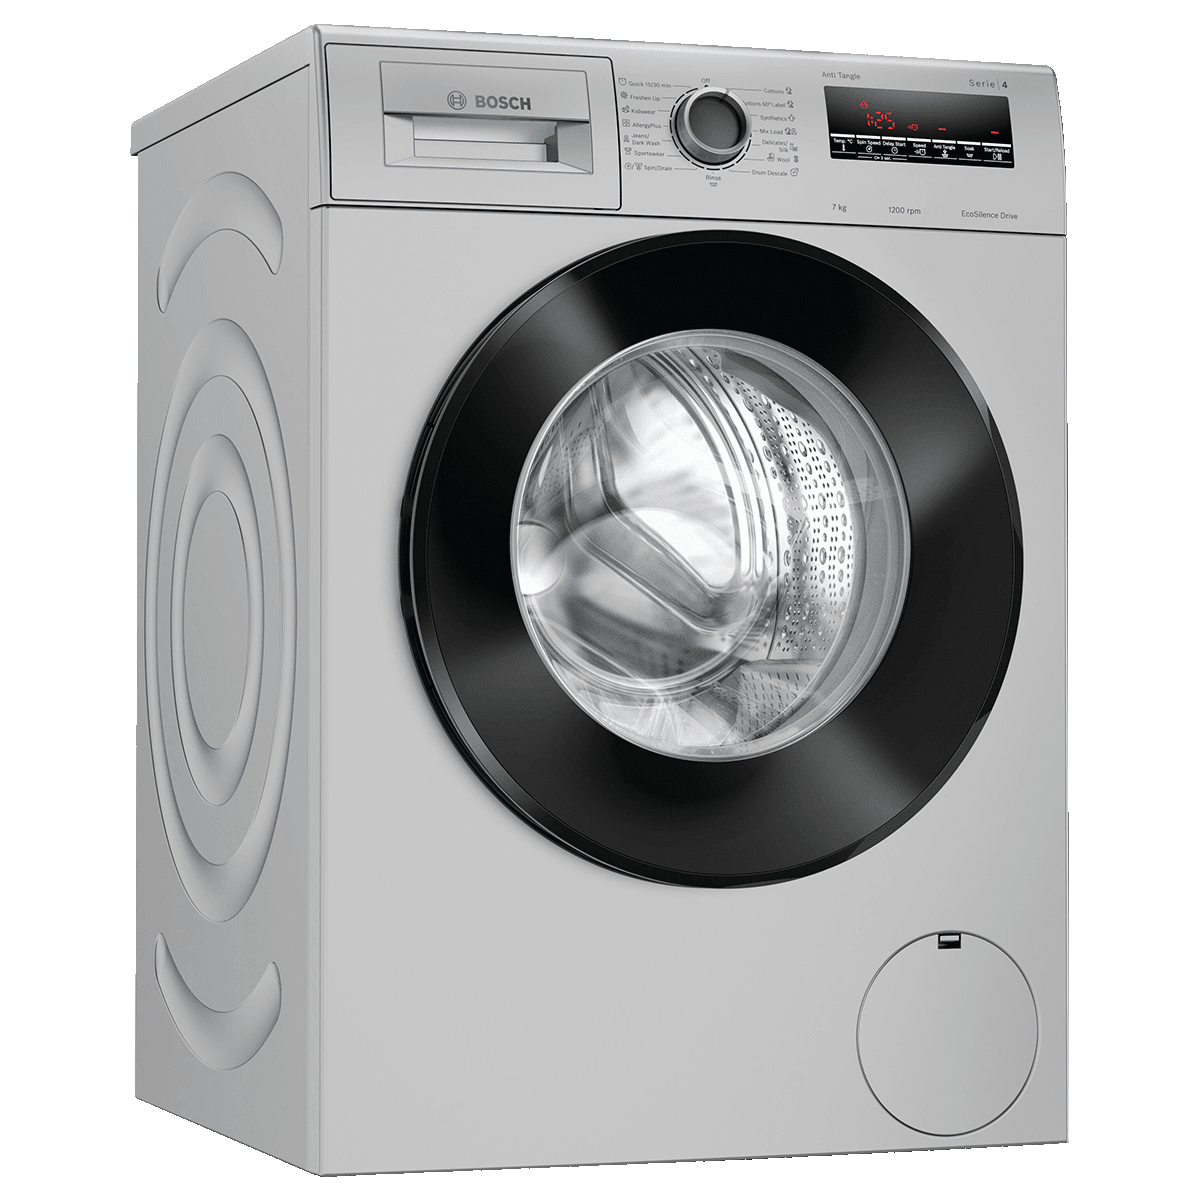 Bosch Serie 4 7 Kg Fully Automatic Front Load Washing Machine (Reload Function, WAJ24262IN, Platinum Silver)